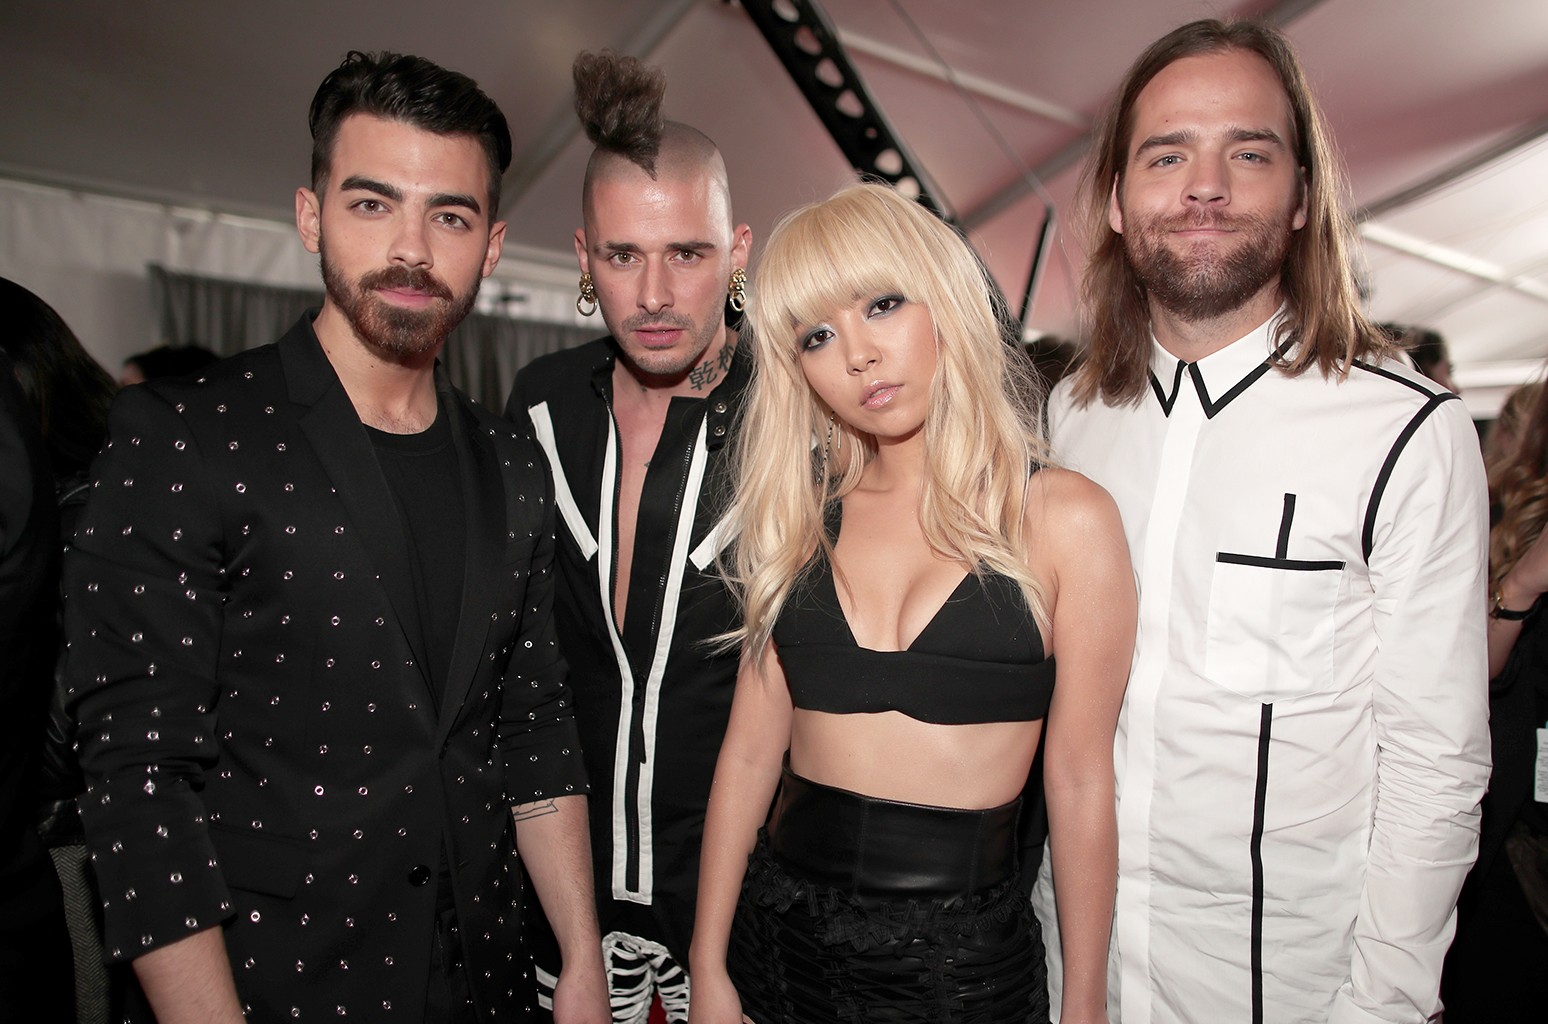 DNCE  attend The 59th Grammy Awards at Staples Center on Feb. 12, 2017 in Los Angeles.